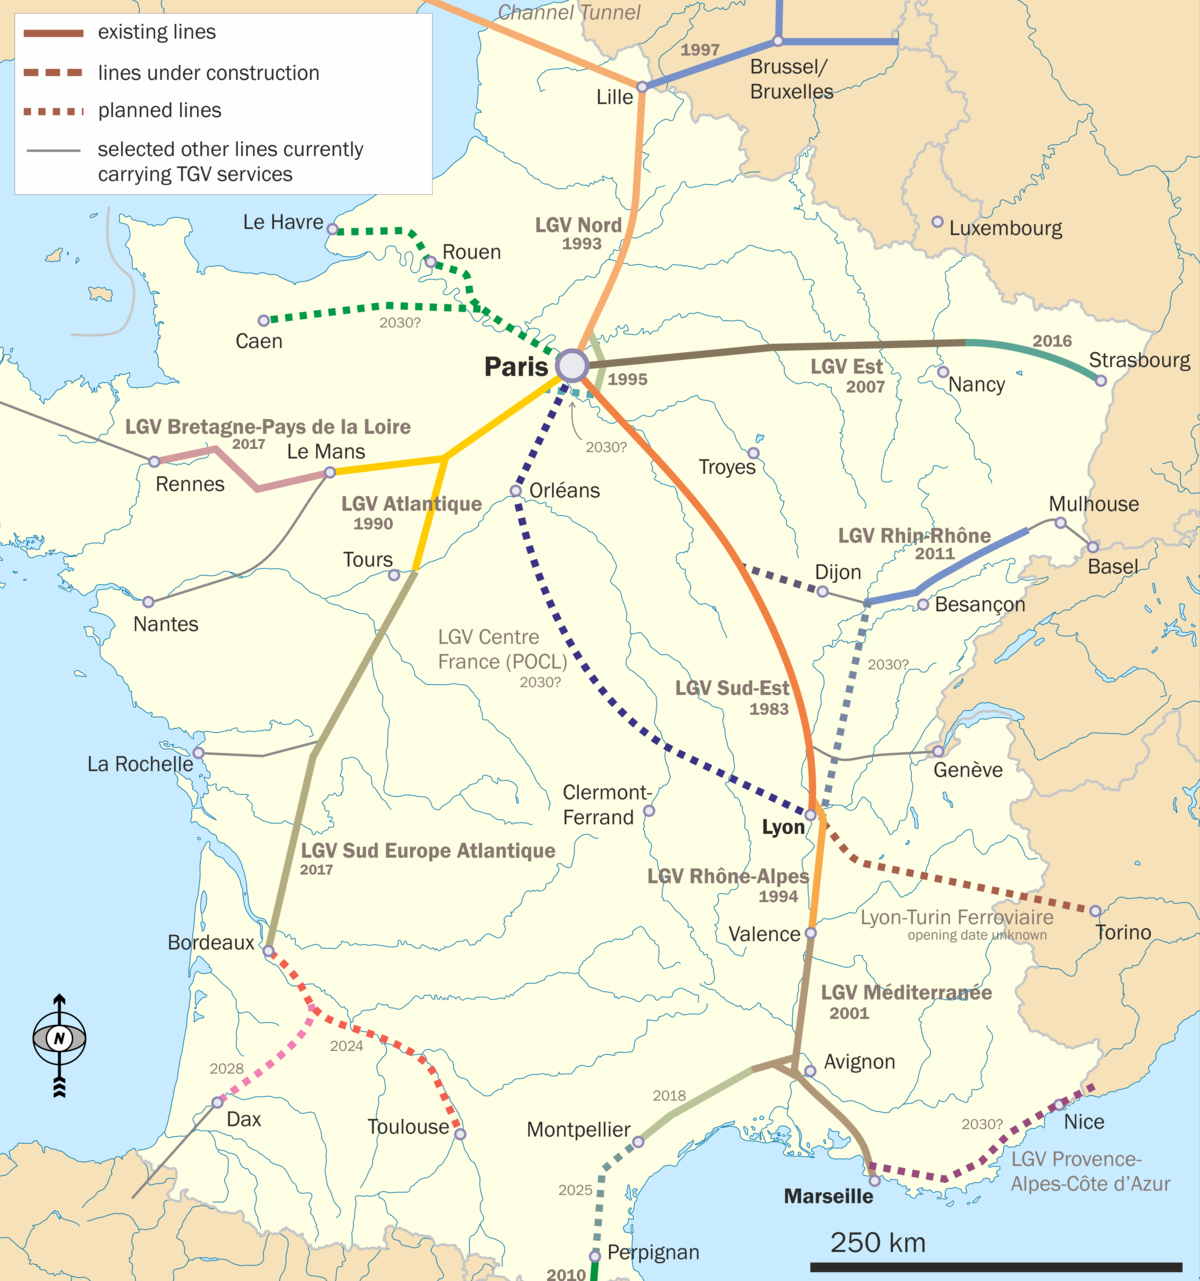 LGV Sud Europe Atlantique Wikipedia